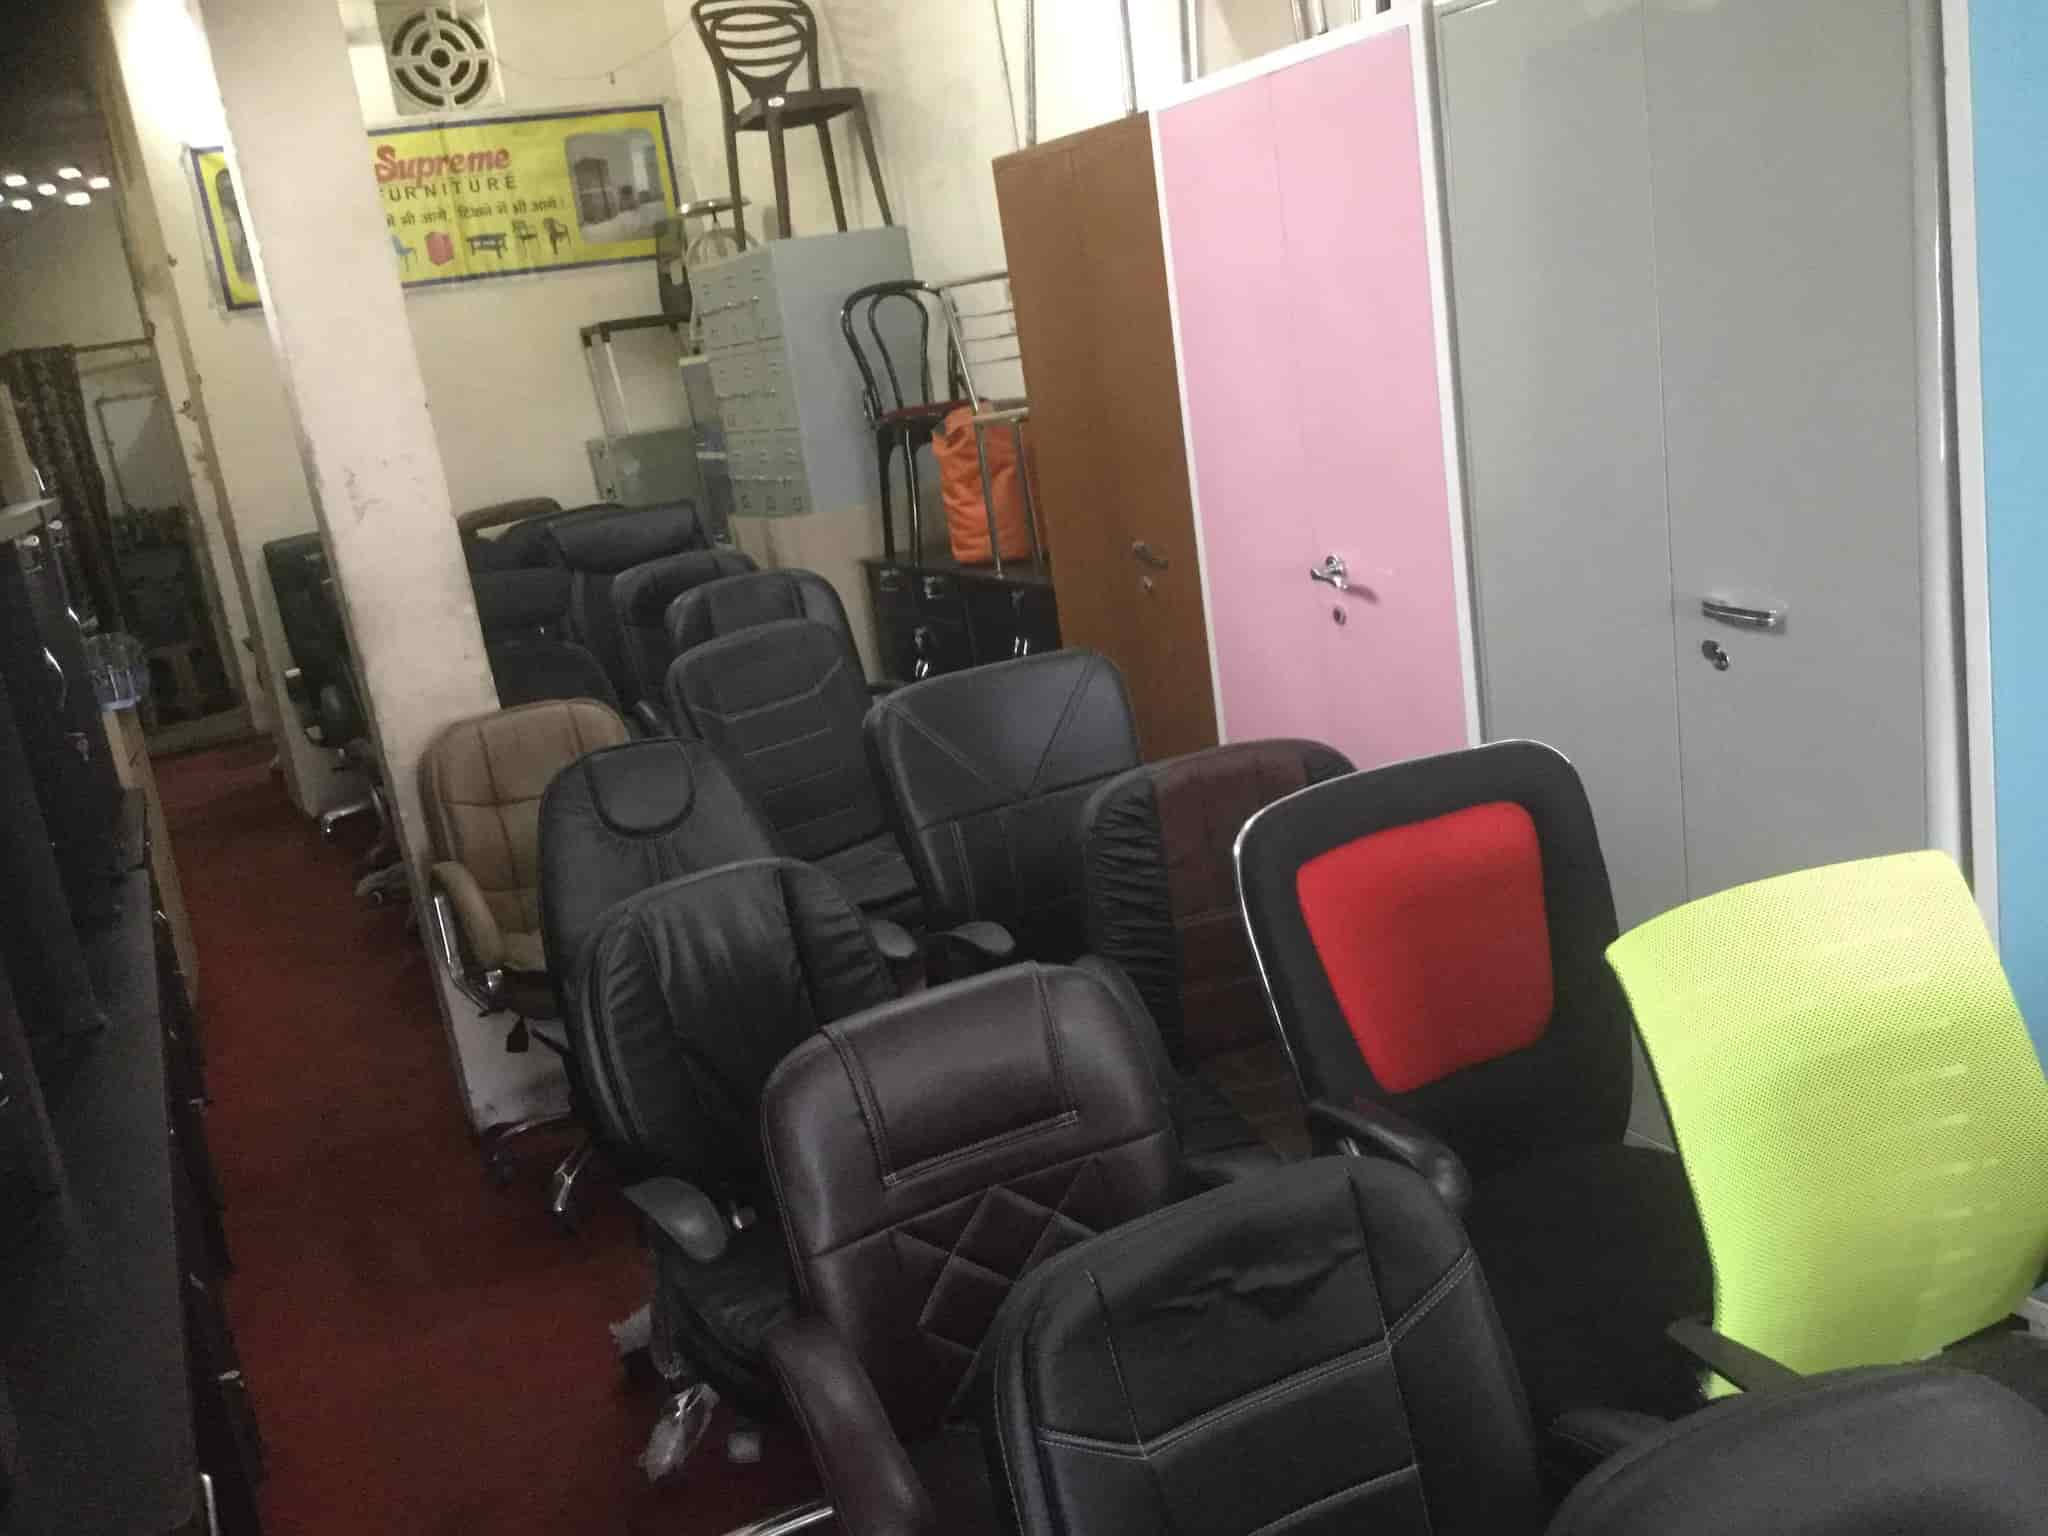 mr office system furniture photos sector 9 noida pictures rh justdial com mr price office furniture mr office furniture fort lauderdale fl